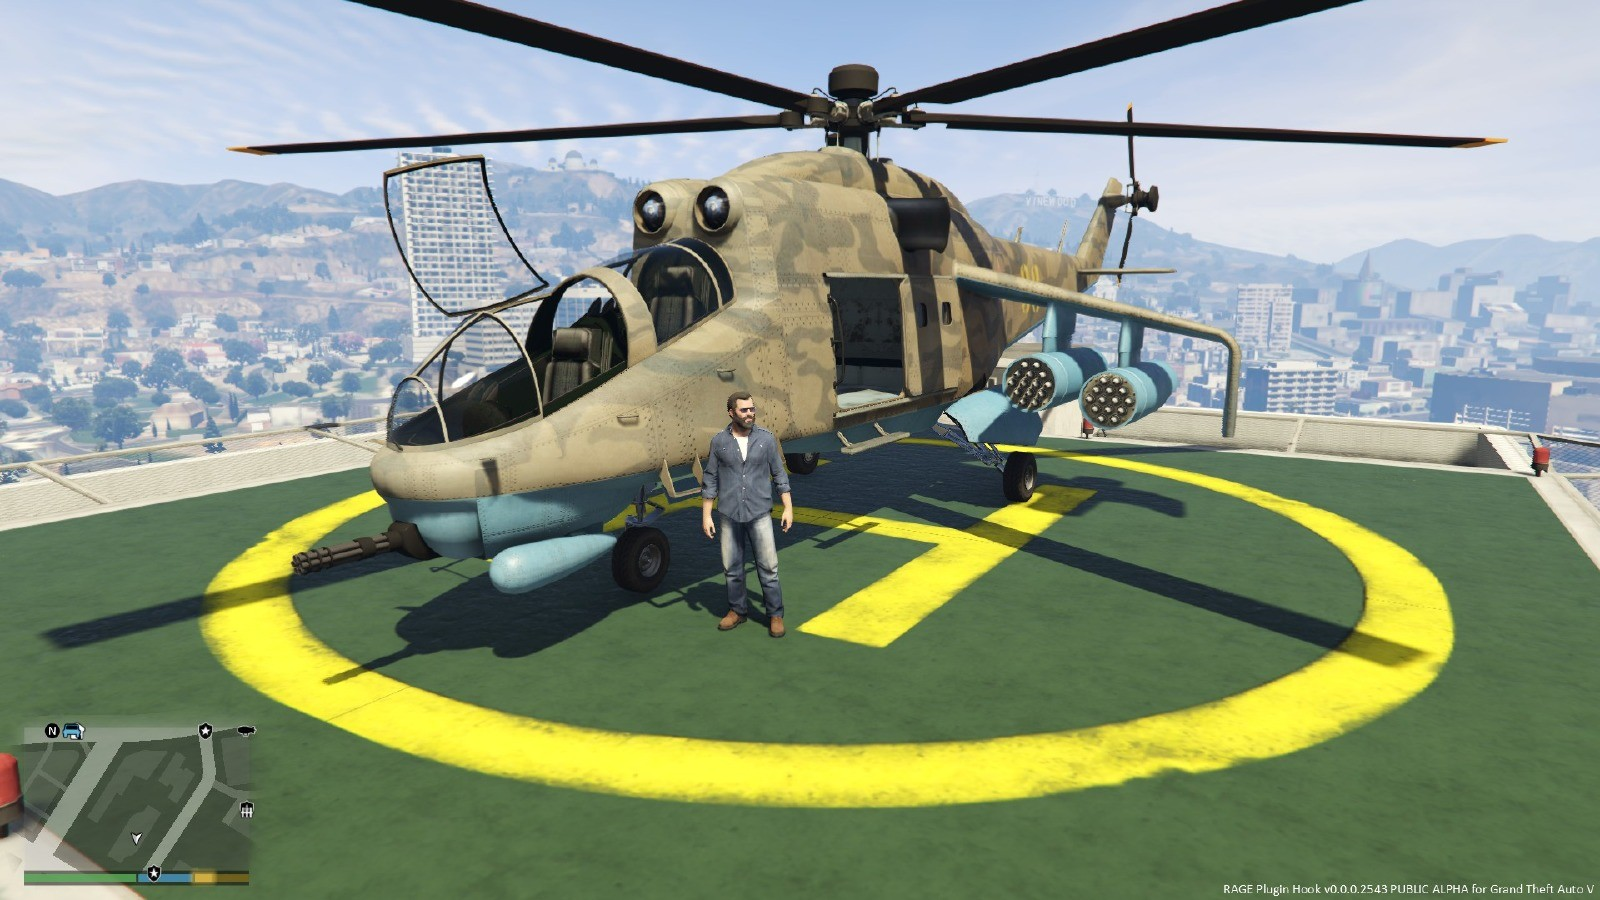 Elicottero Gta 5 : Gta military helicopter location imgkid the